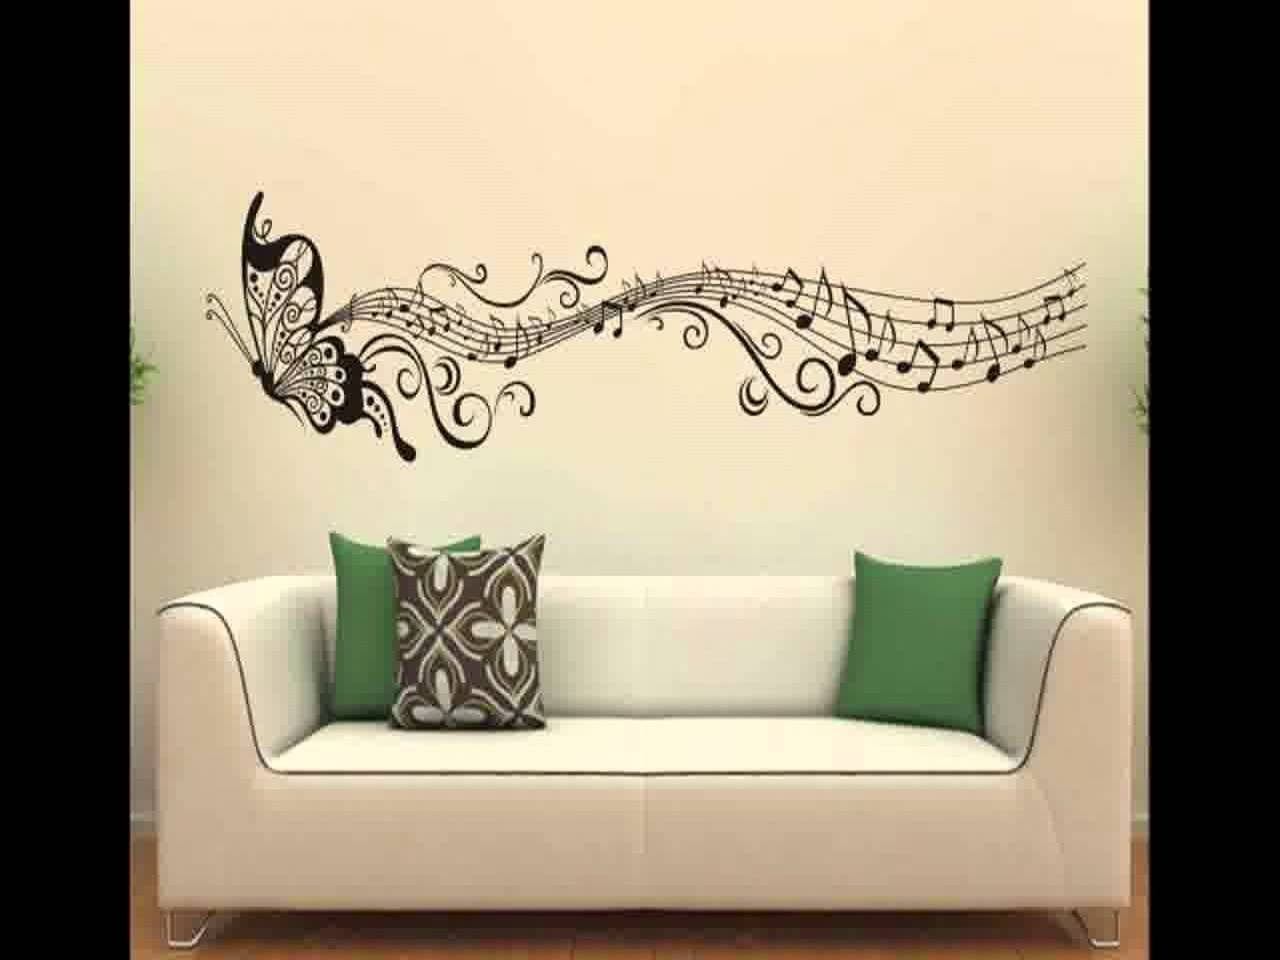 Acrylic Wall Art Design Ideas – Youtube Pertaining To Latest Acrylic Wall Art (View 8 of 20)